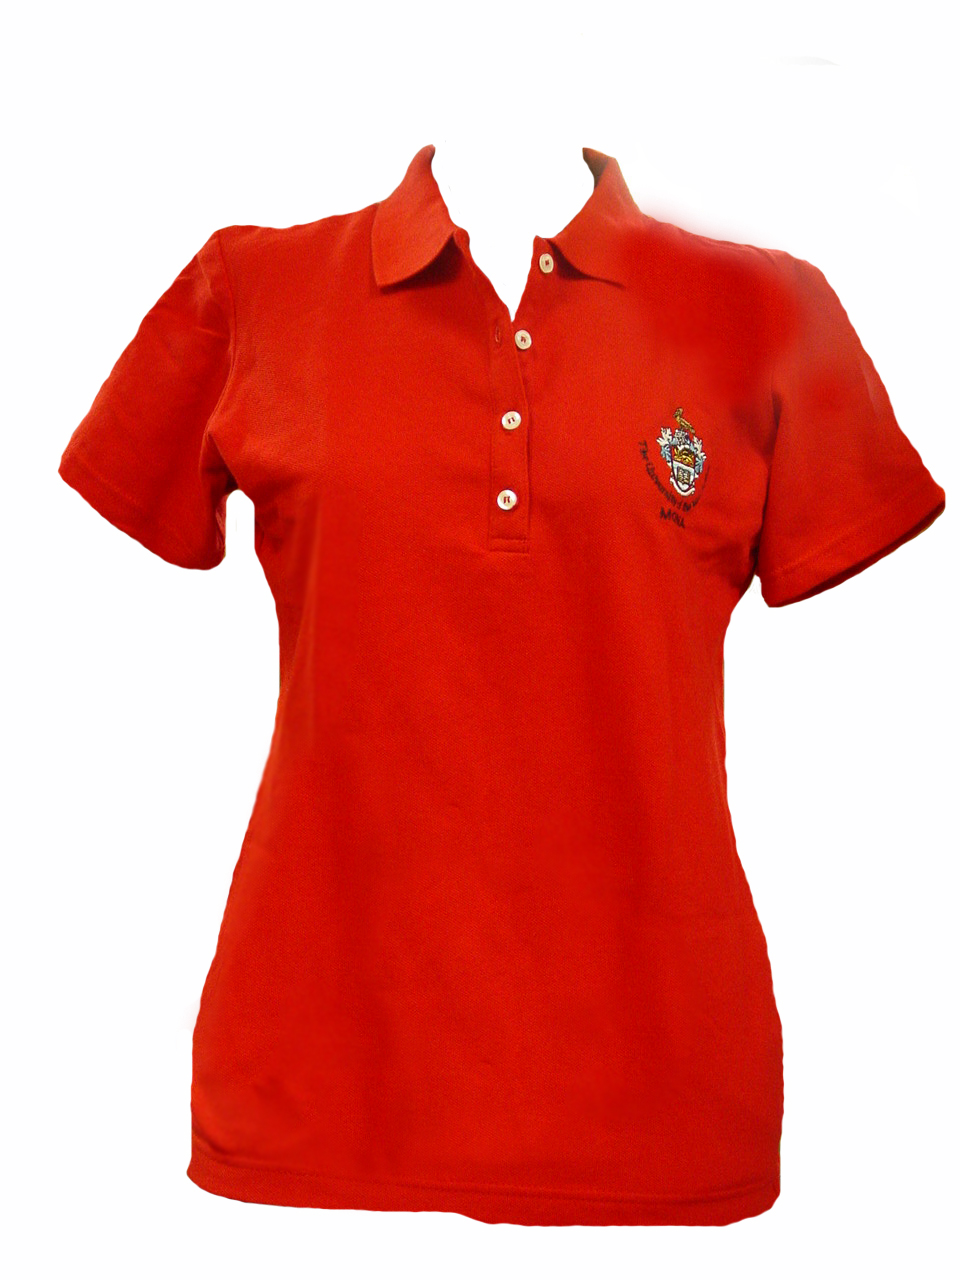 UWI LADIES POLO T-SHIRTS